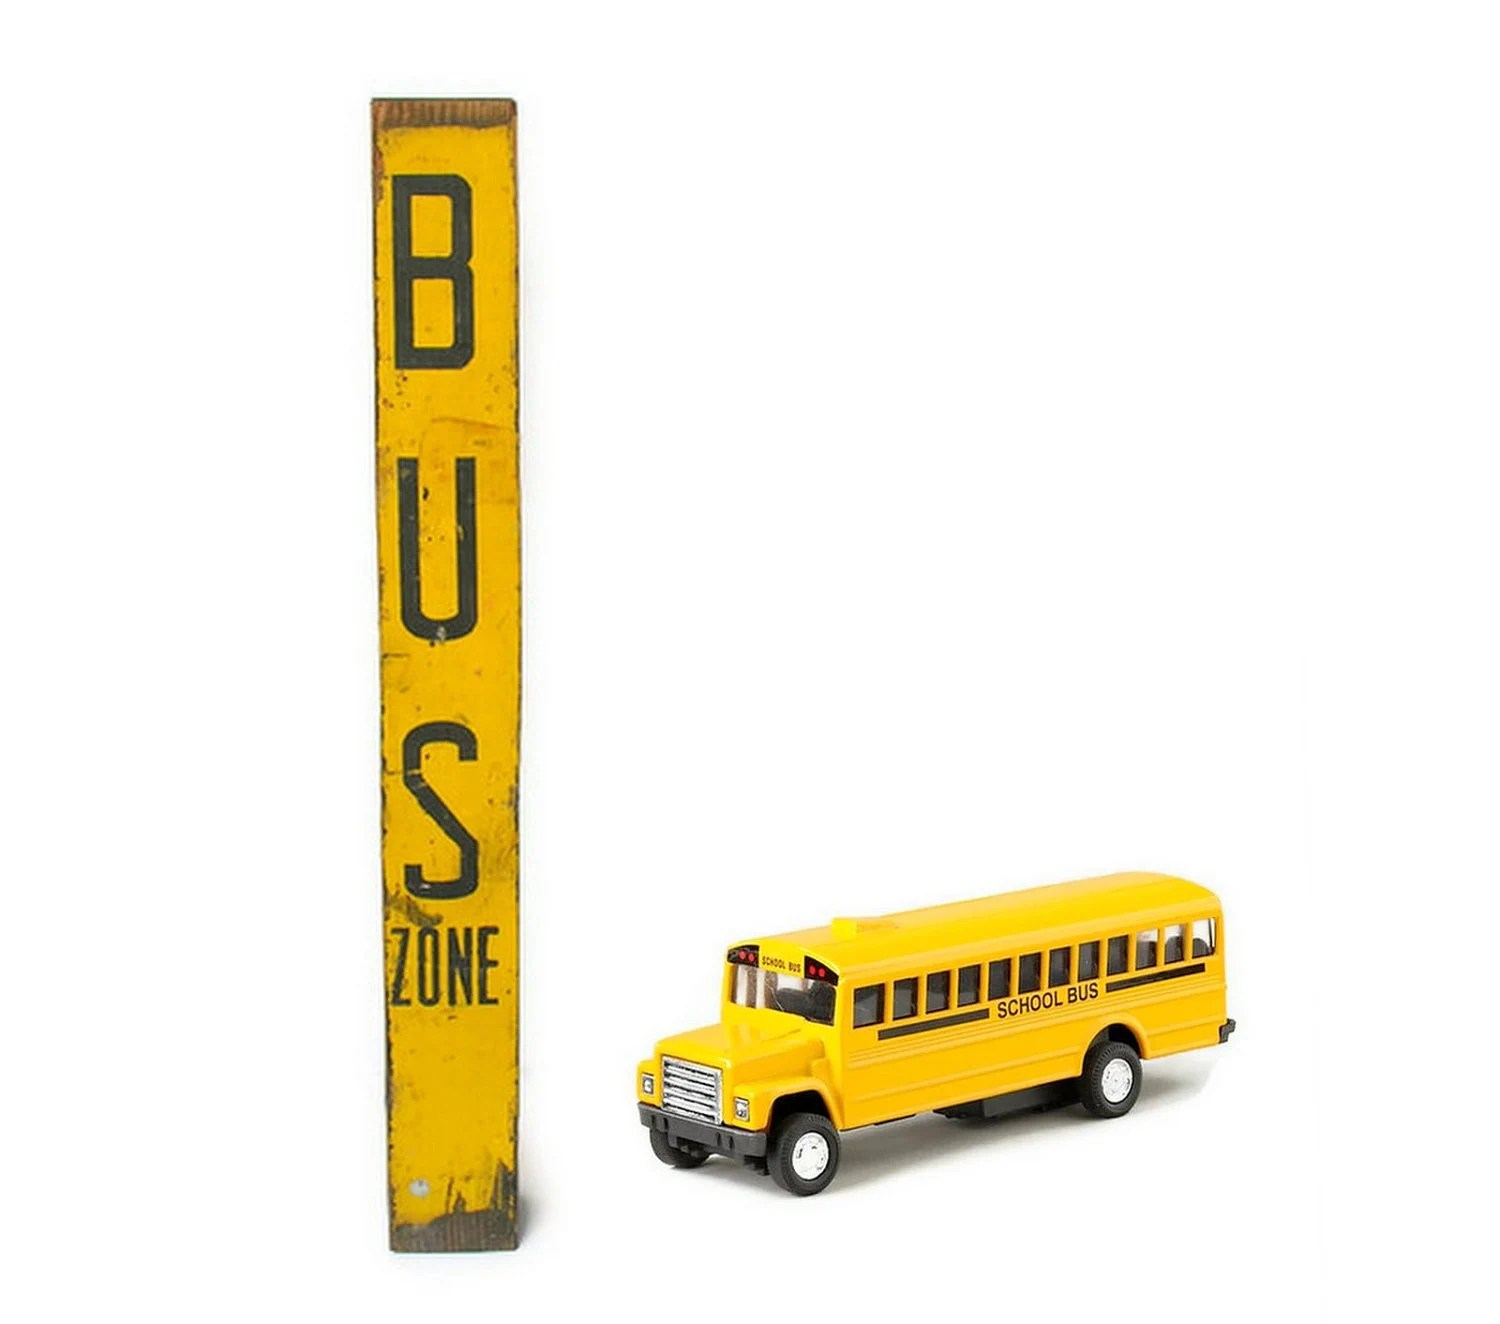 Vintage Sign School Bus Zone Yellow Black Distressed Handpainted Wood Post - veraviola